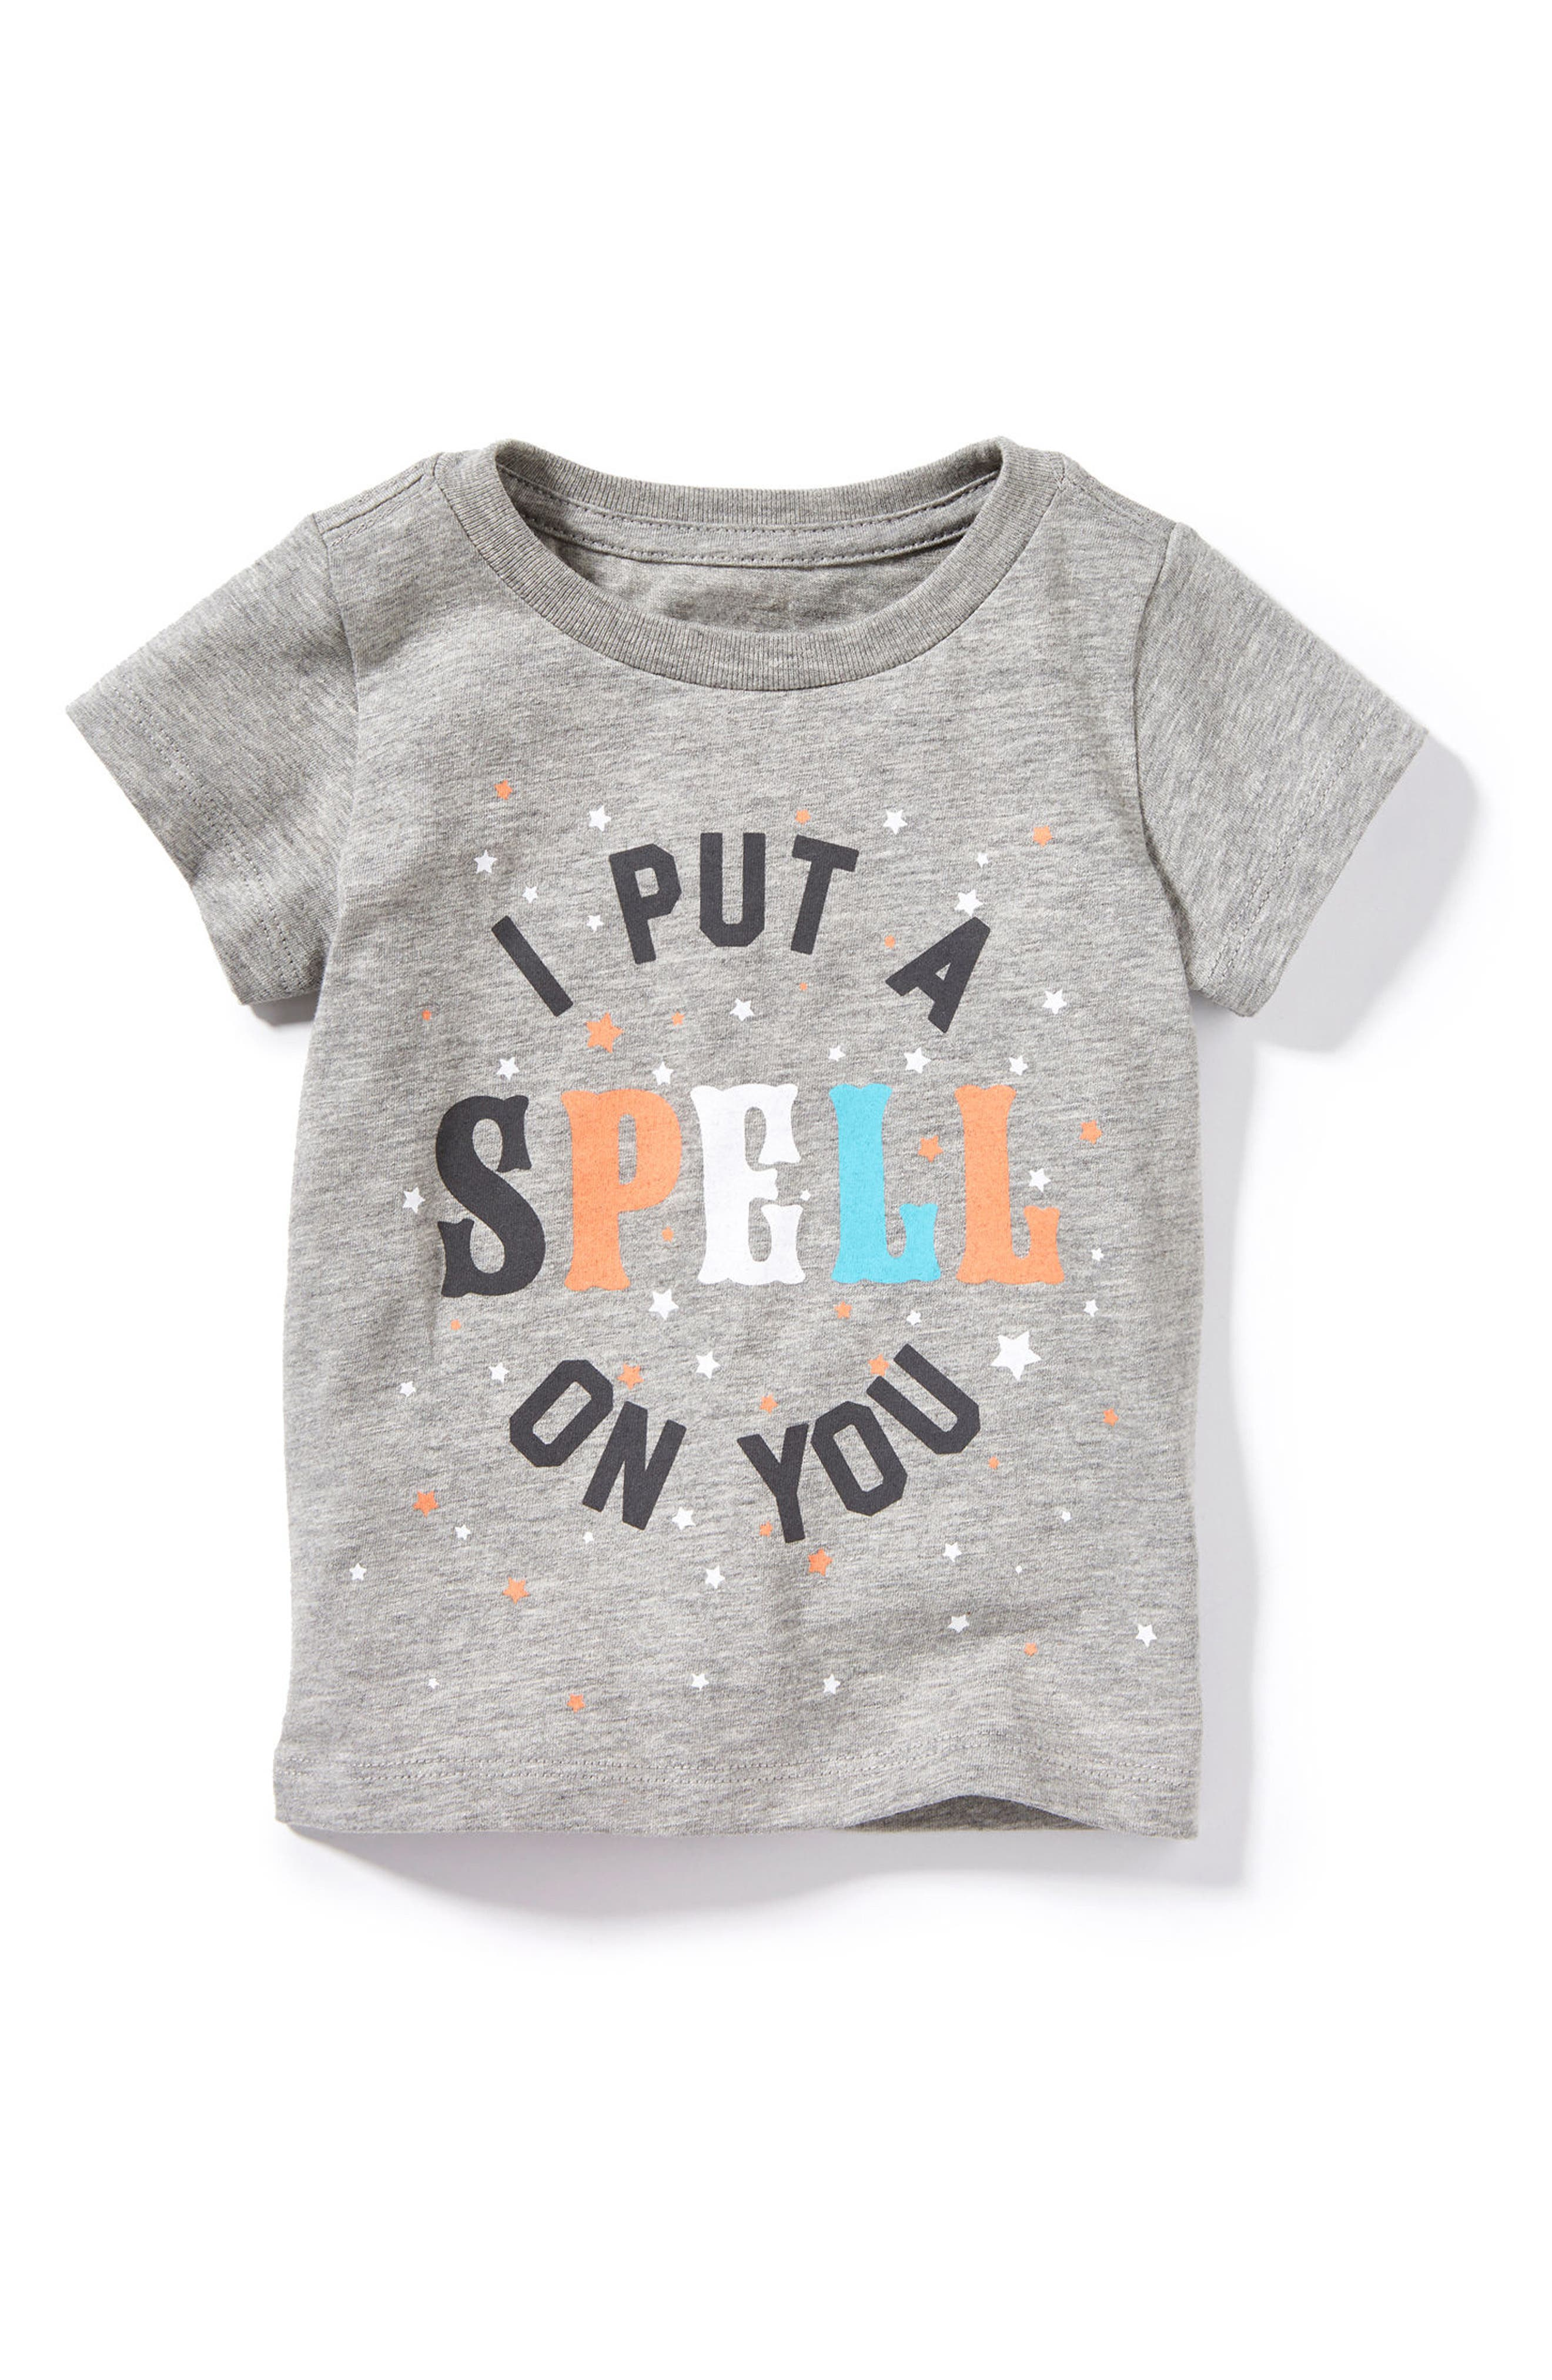 Alternate Image 1 Selected - Peek I Put a Spell on You Graphic Tee (Baby Girls)